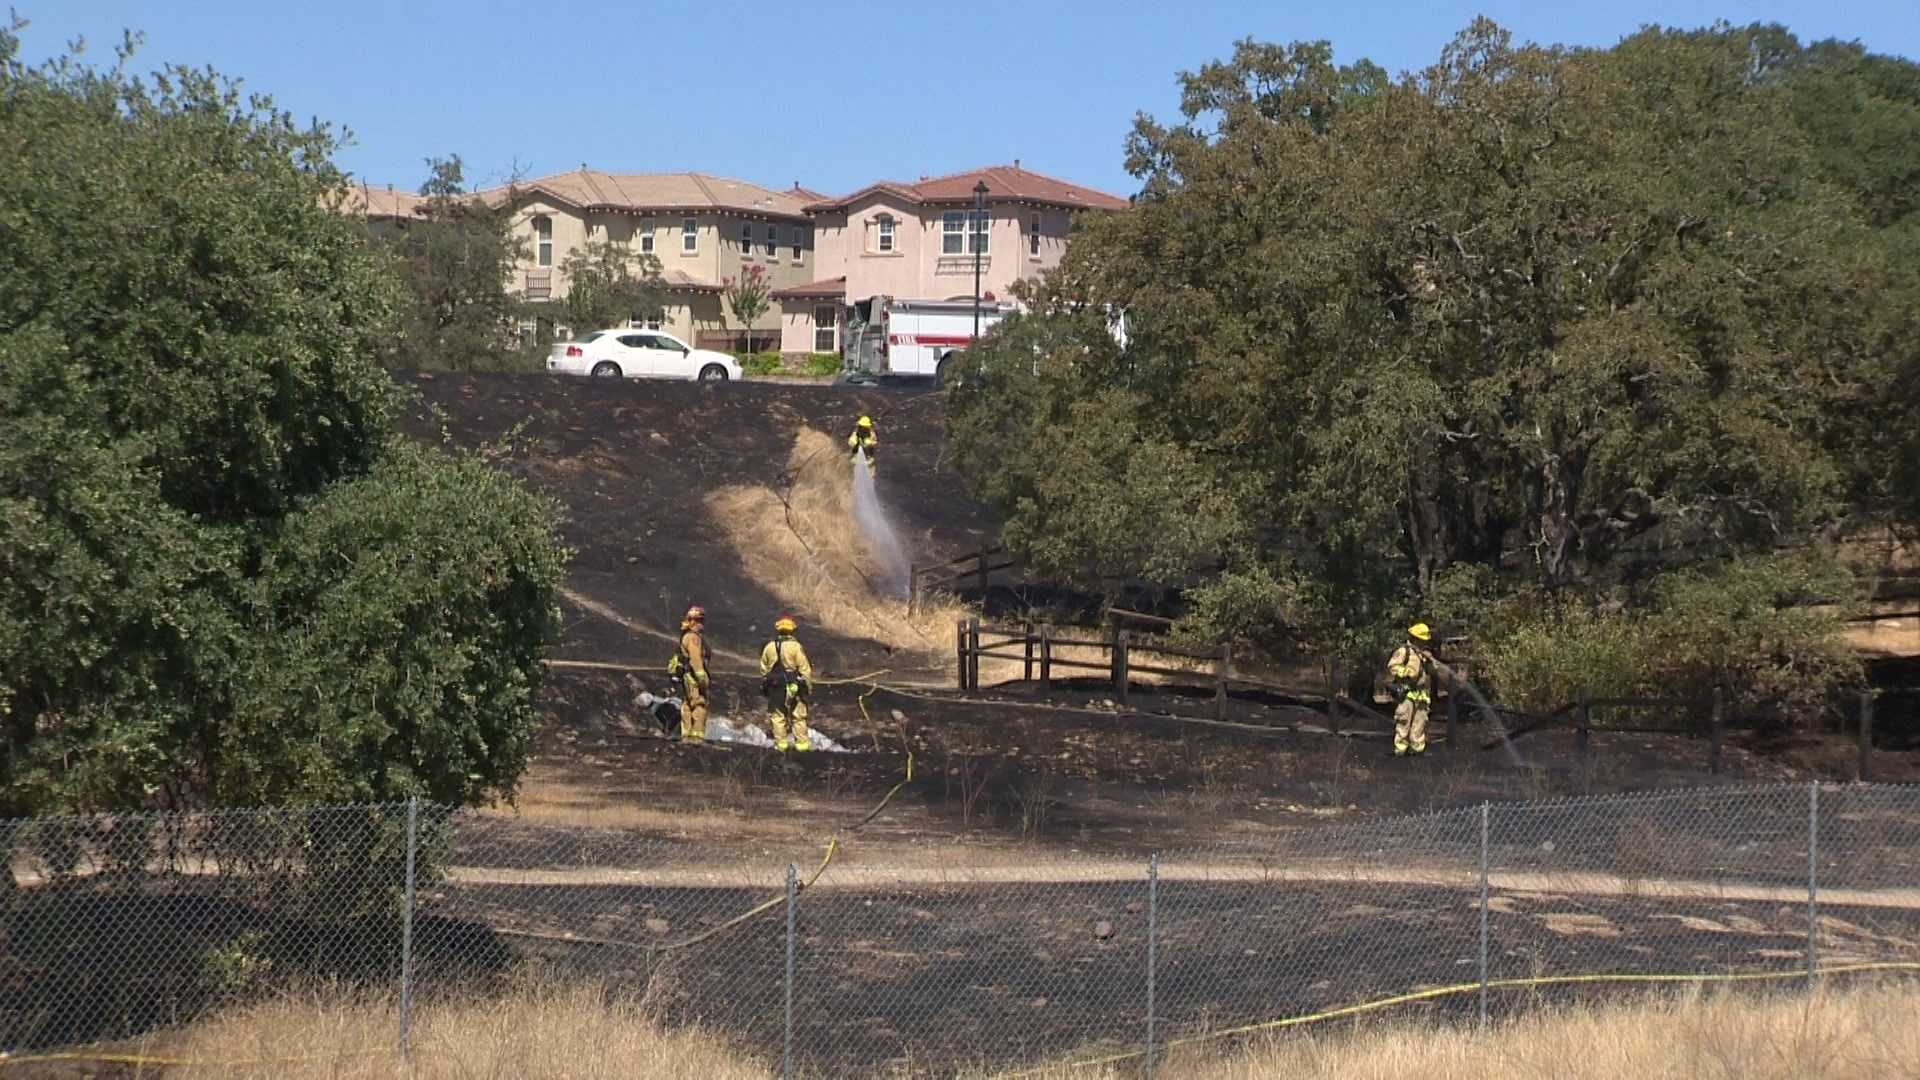 Firefighters mop up after a 3-acre grass fire in Folsom on Saturday, July 23, 2016.